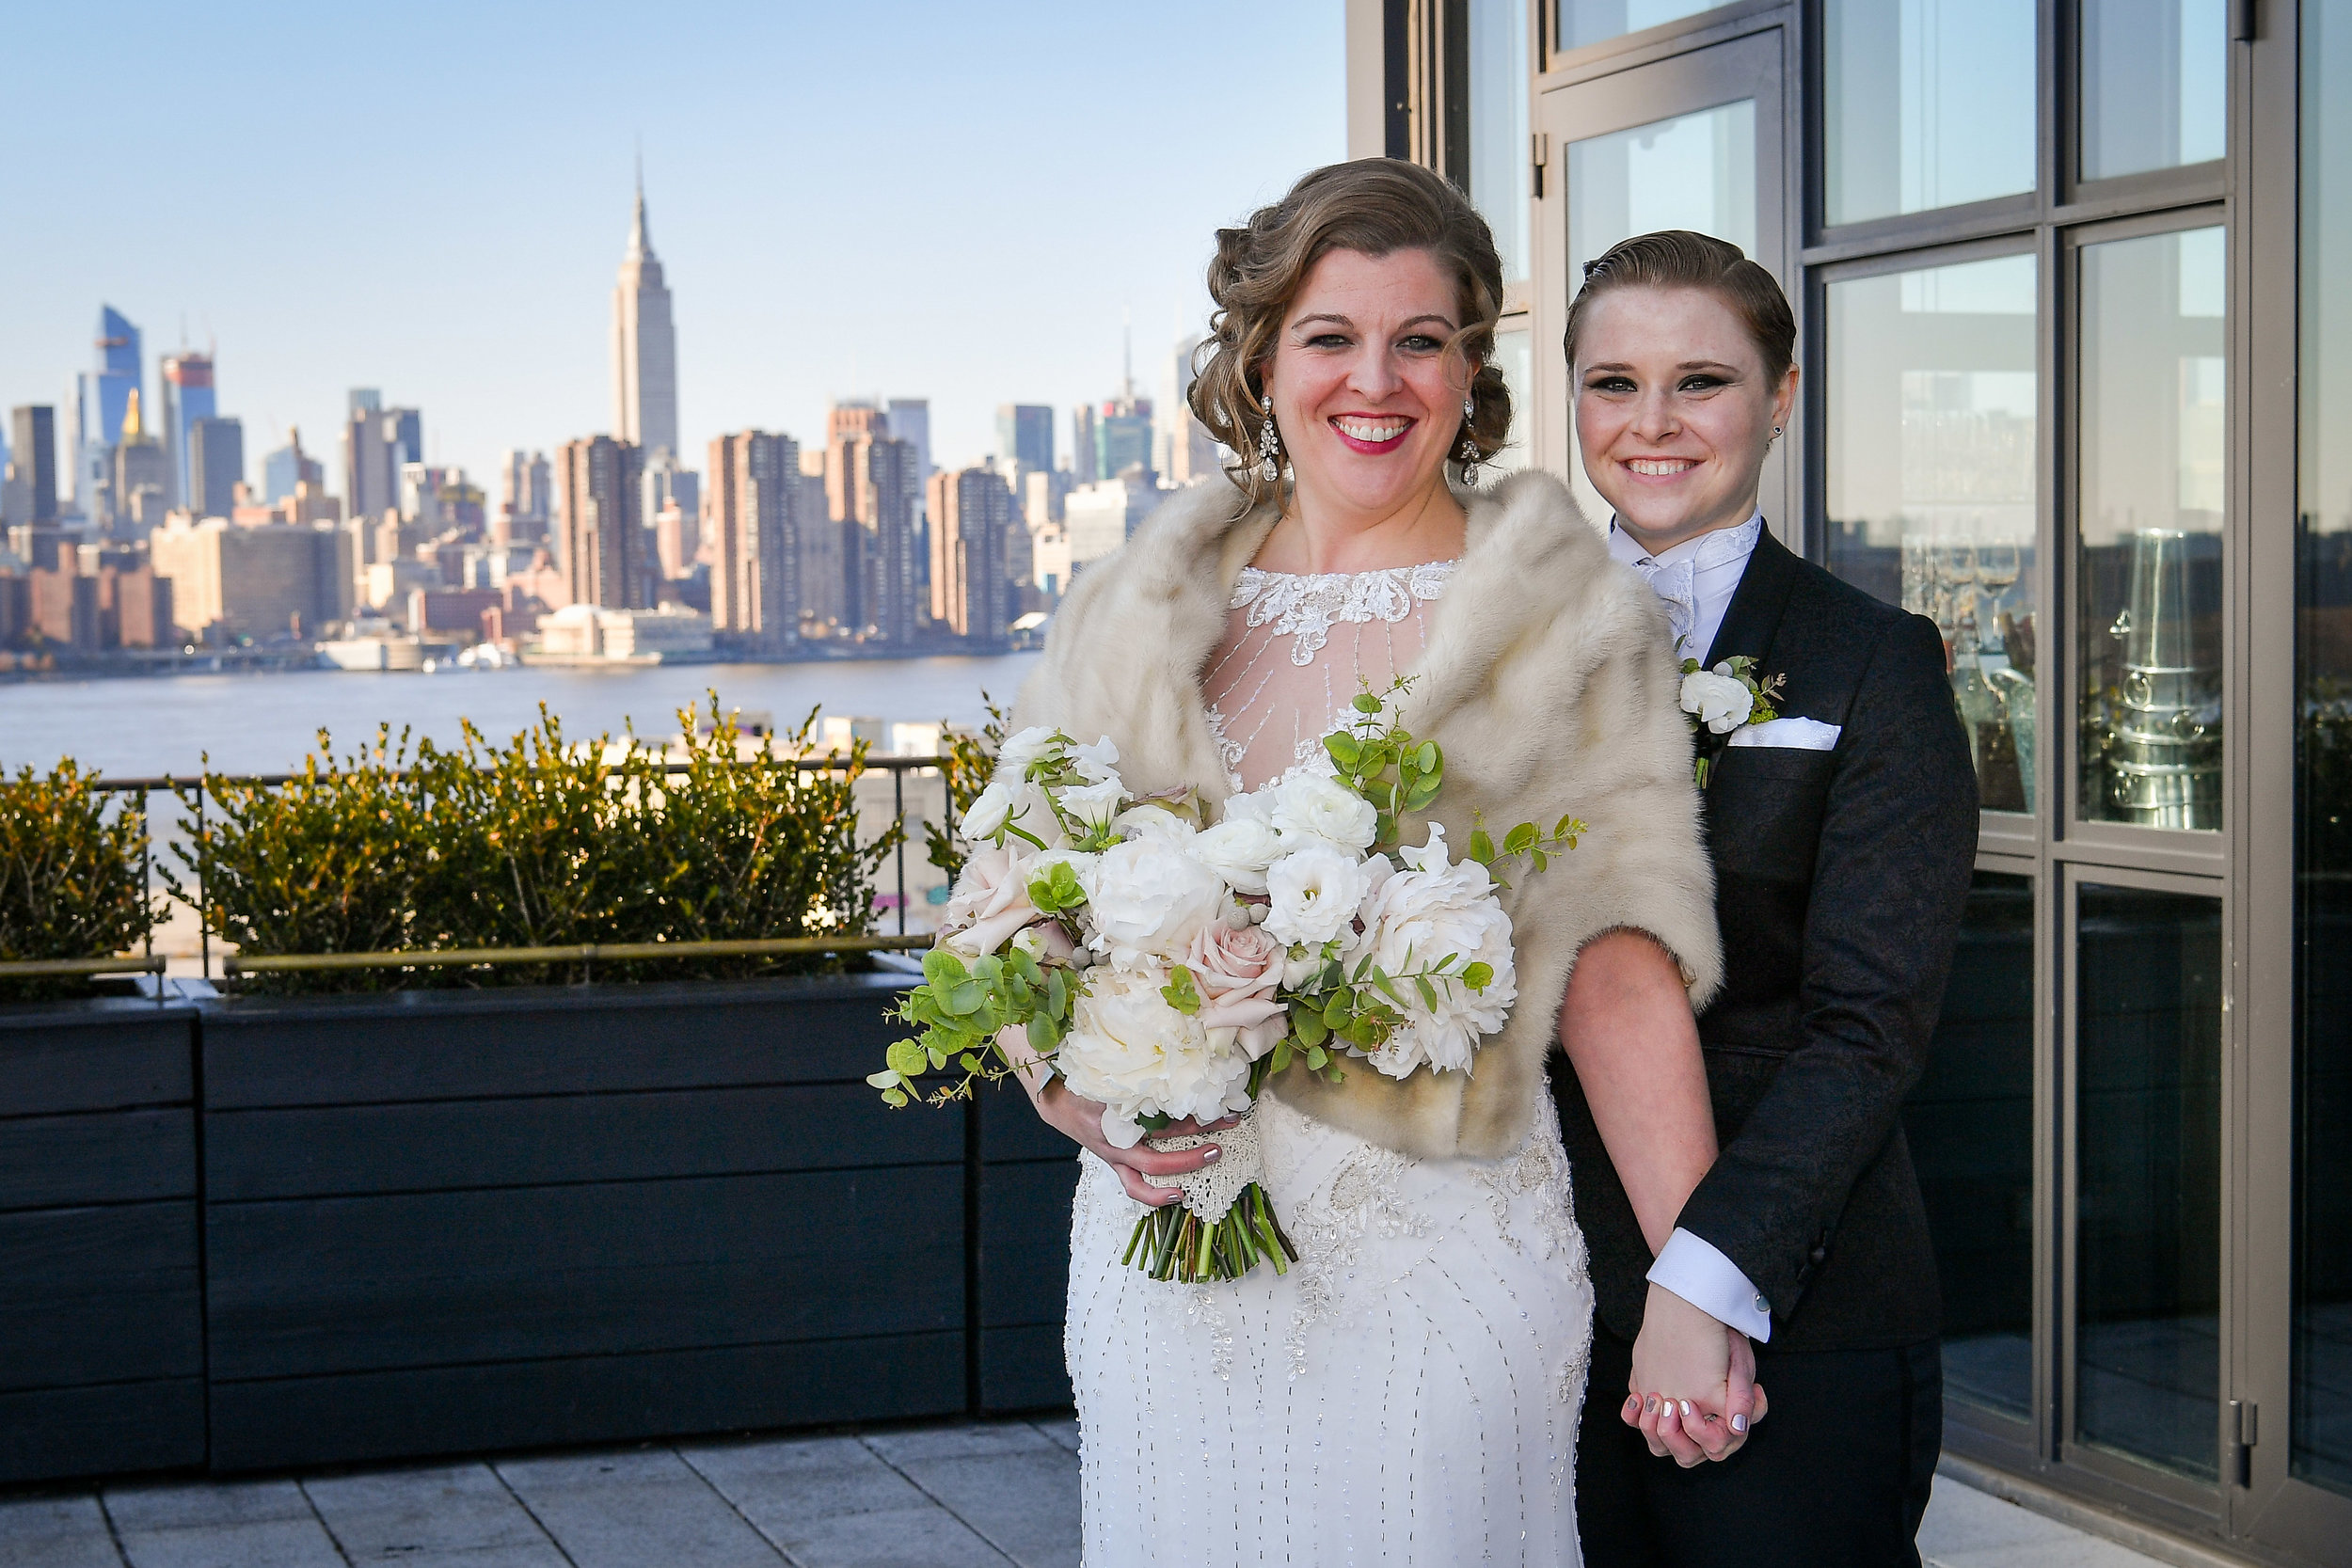 Erica and Emily Wedding 206.jpg